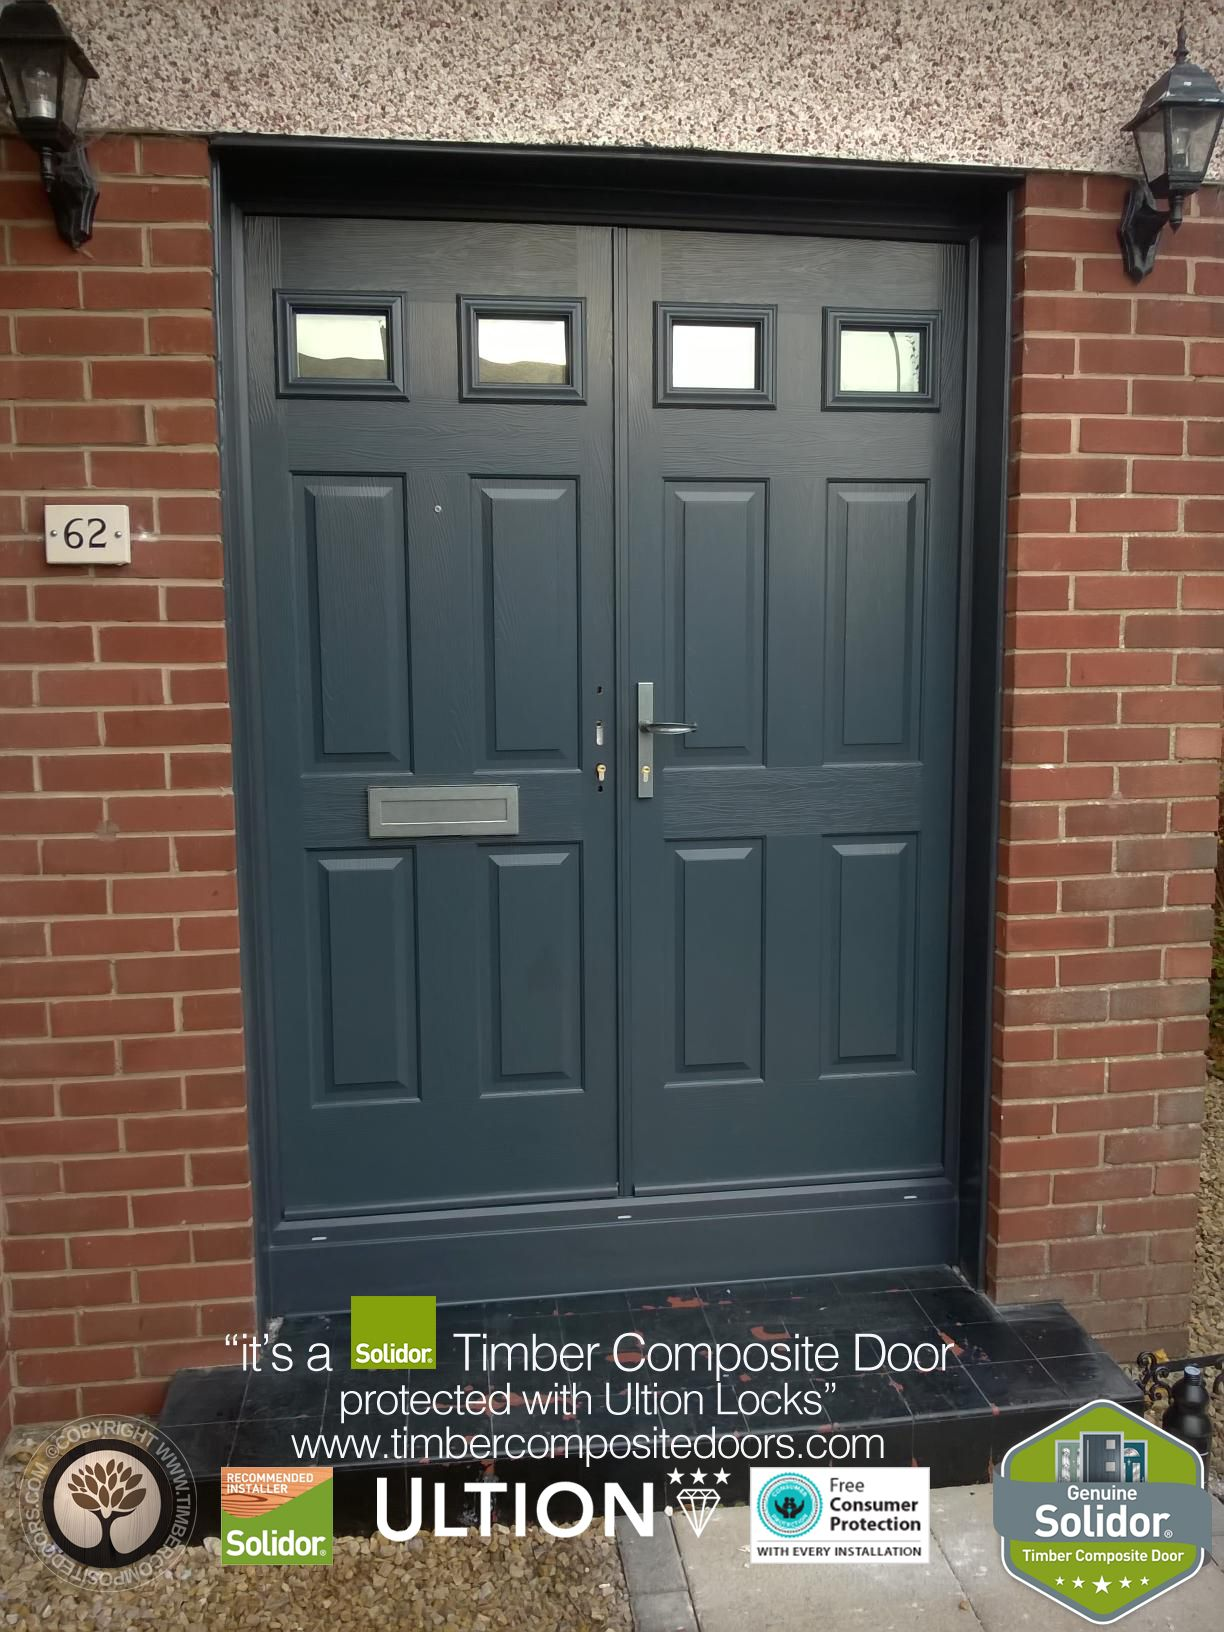 Anthracite grey tenby 2 french doors solidor timber composite door anthracite grey tenby 2 french doors solidor timber composite door rubansaba